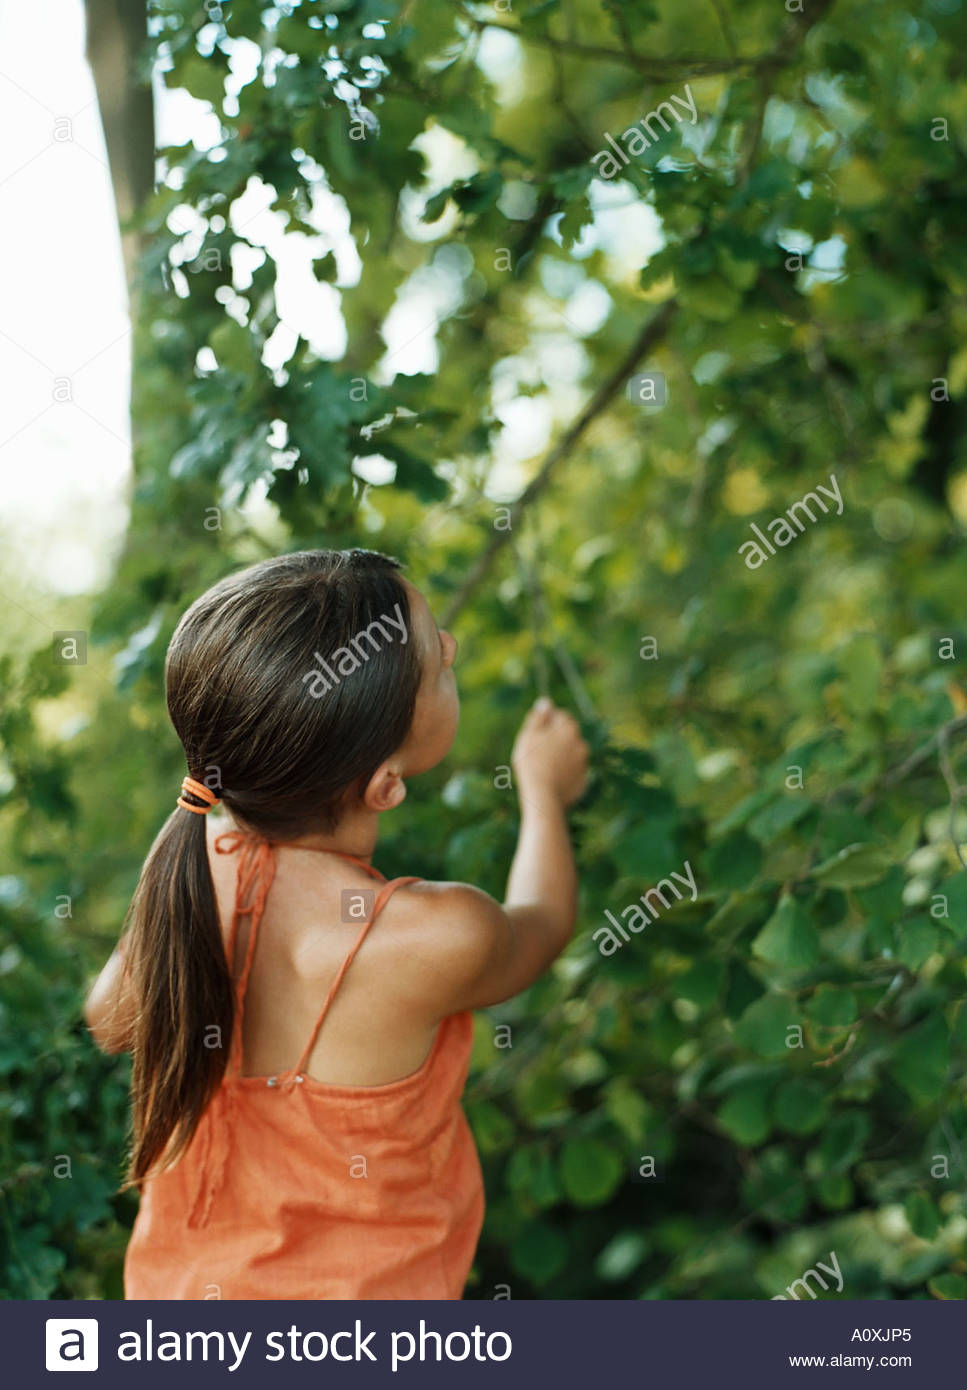 Girl looking up into tree - Stock Image